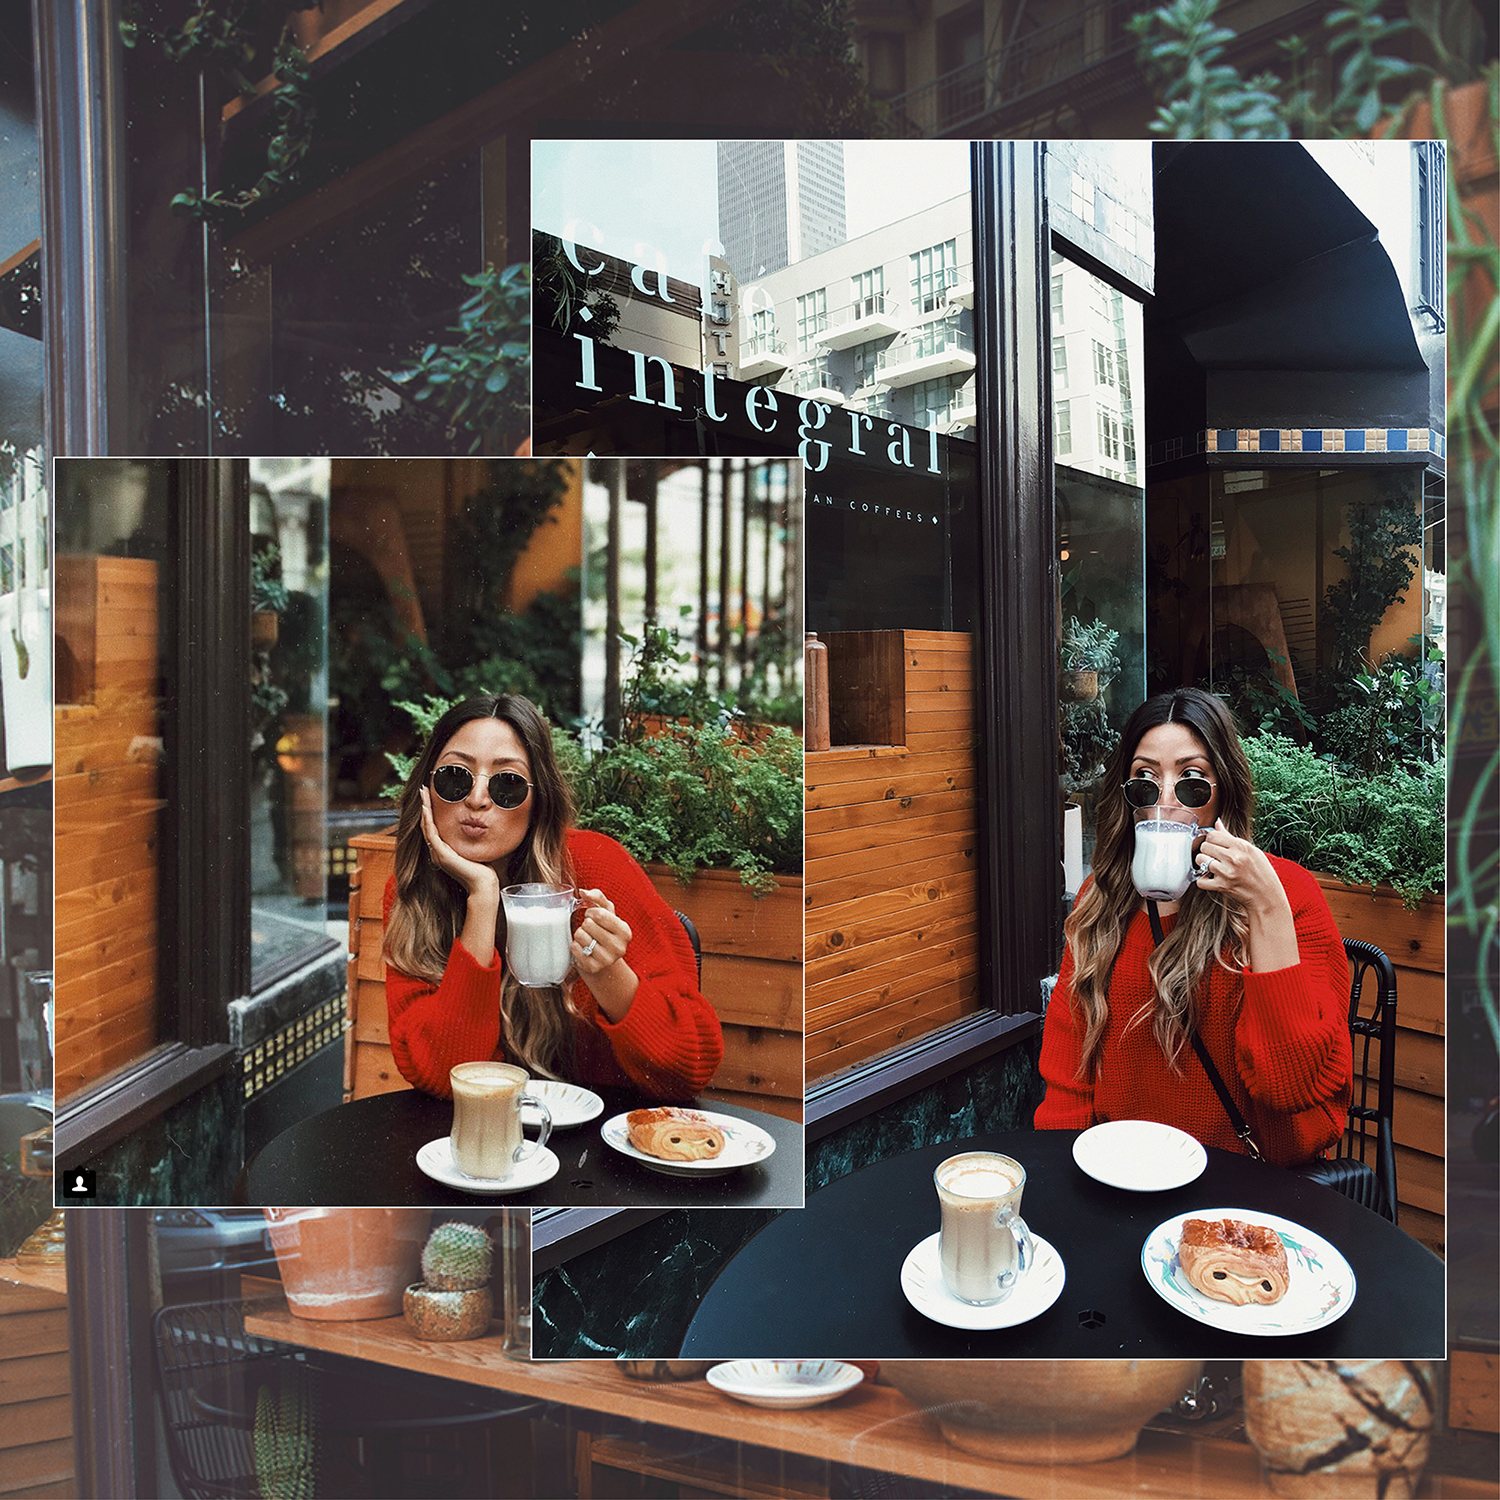 5 Ways To Make Monday Your Favorite Day, ootd, inspiration, motivation, inspo, life, monday, weekday, lifestyle, lifestyle blogger, la blogger, whittier blogger, la blogger, latina blogger, hispanic blogger, mexican blogger, street style, influencer, la influencer